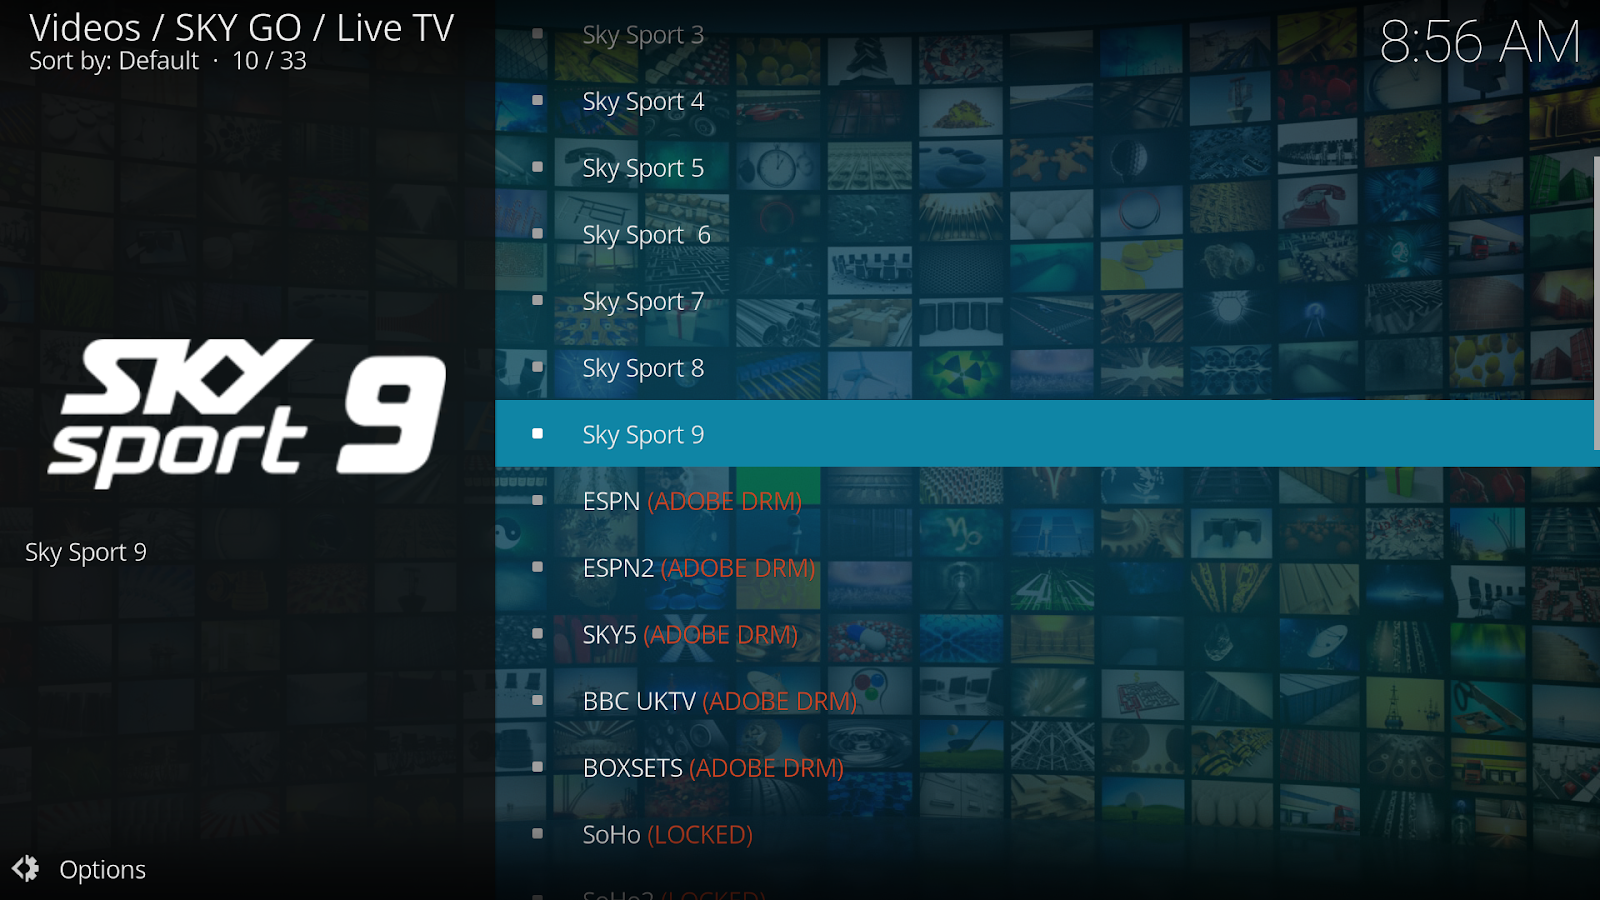 Sky Go Kodi Add-on